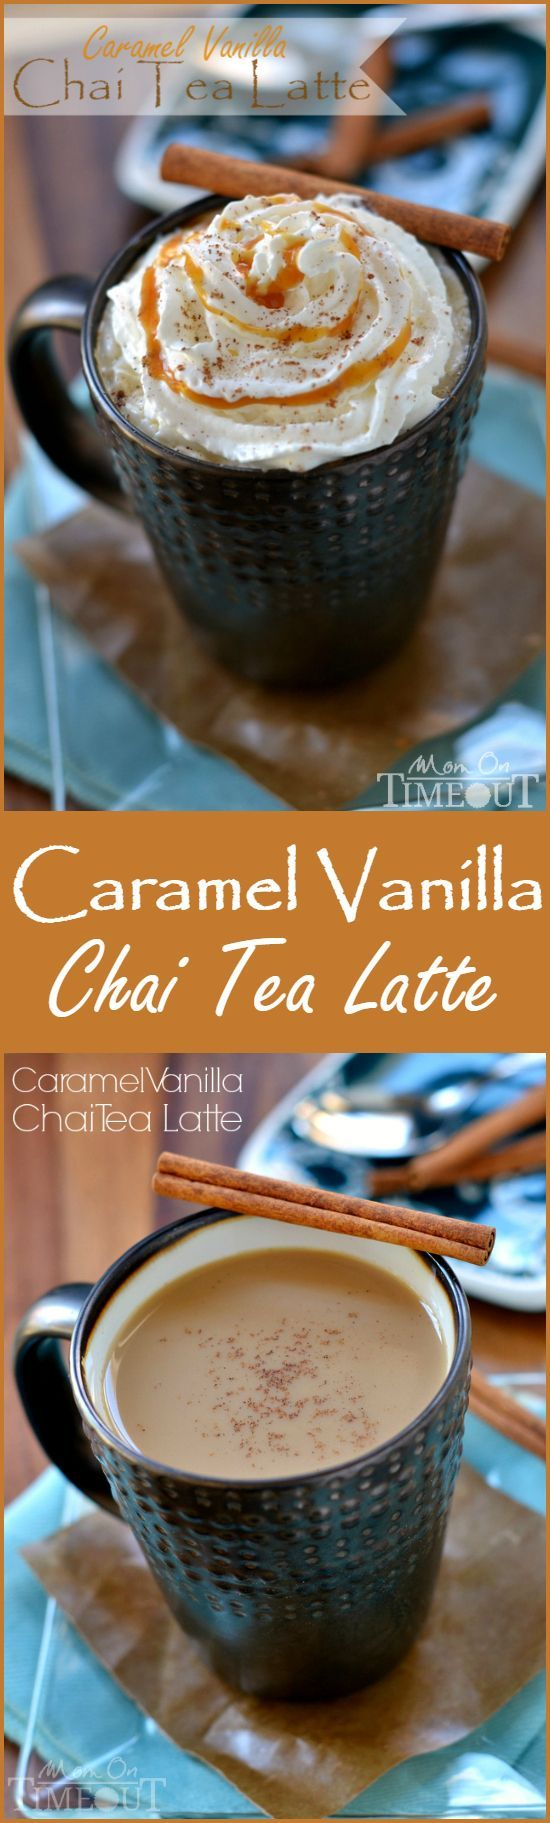 This Caramel Vanilla Chai Tea Latte is one of my favorite morning treats - perfect for those days when I have a few extra minutes! | MomOnTimeout.com | #beverage #drink #caramel #tea #chai #ad #lunchingawesome